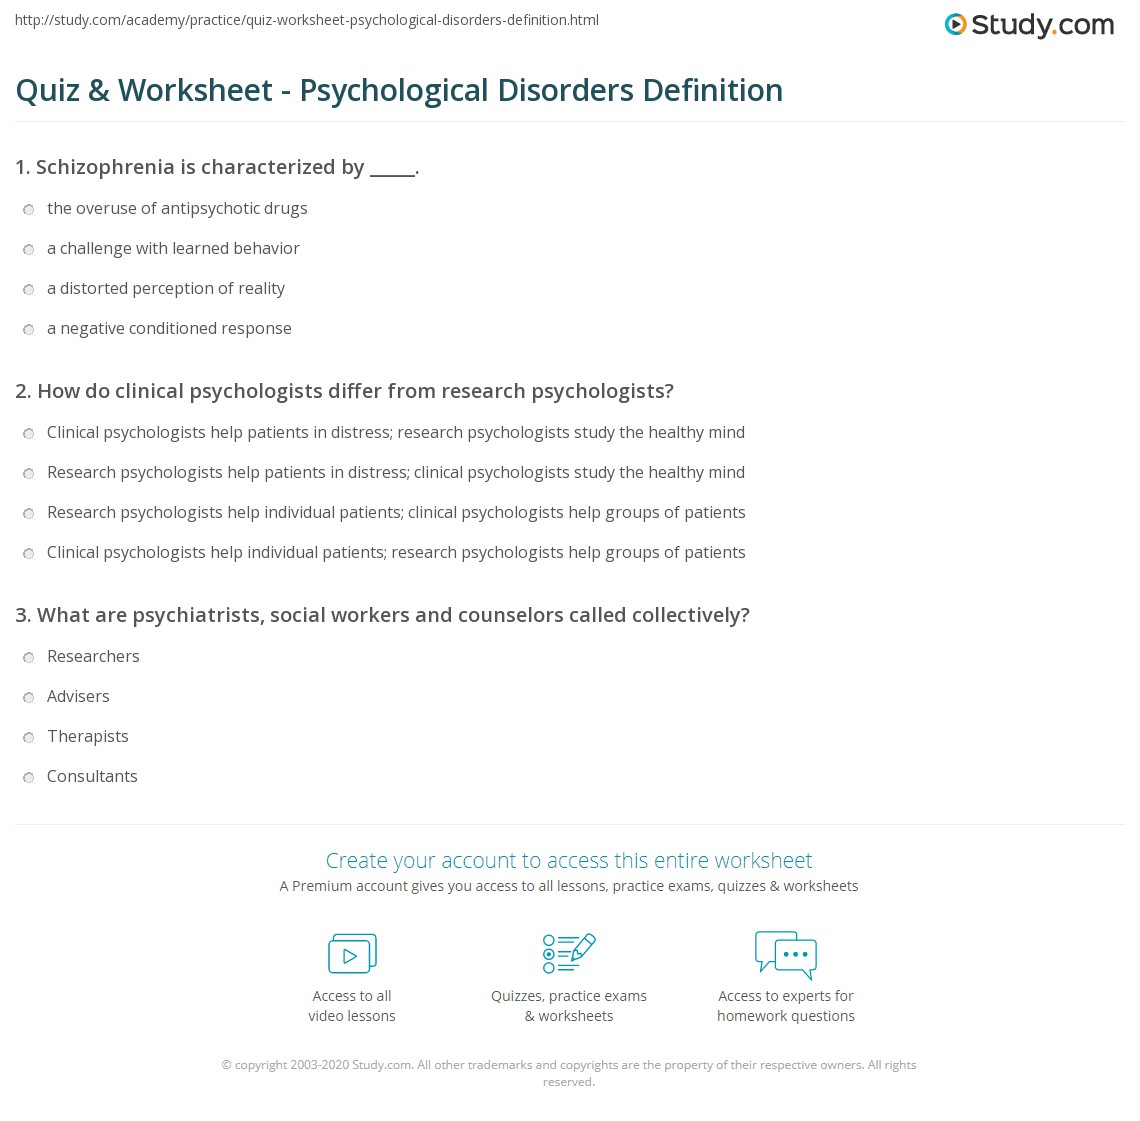 quiz & worksheet - psychological disorders definition | study